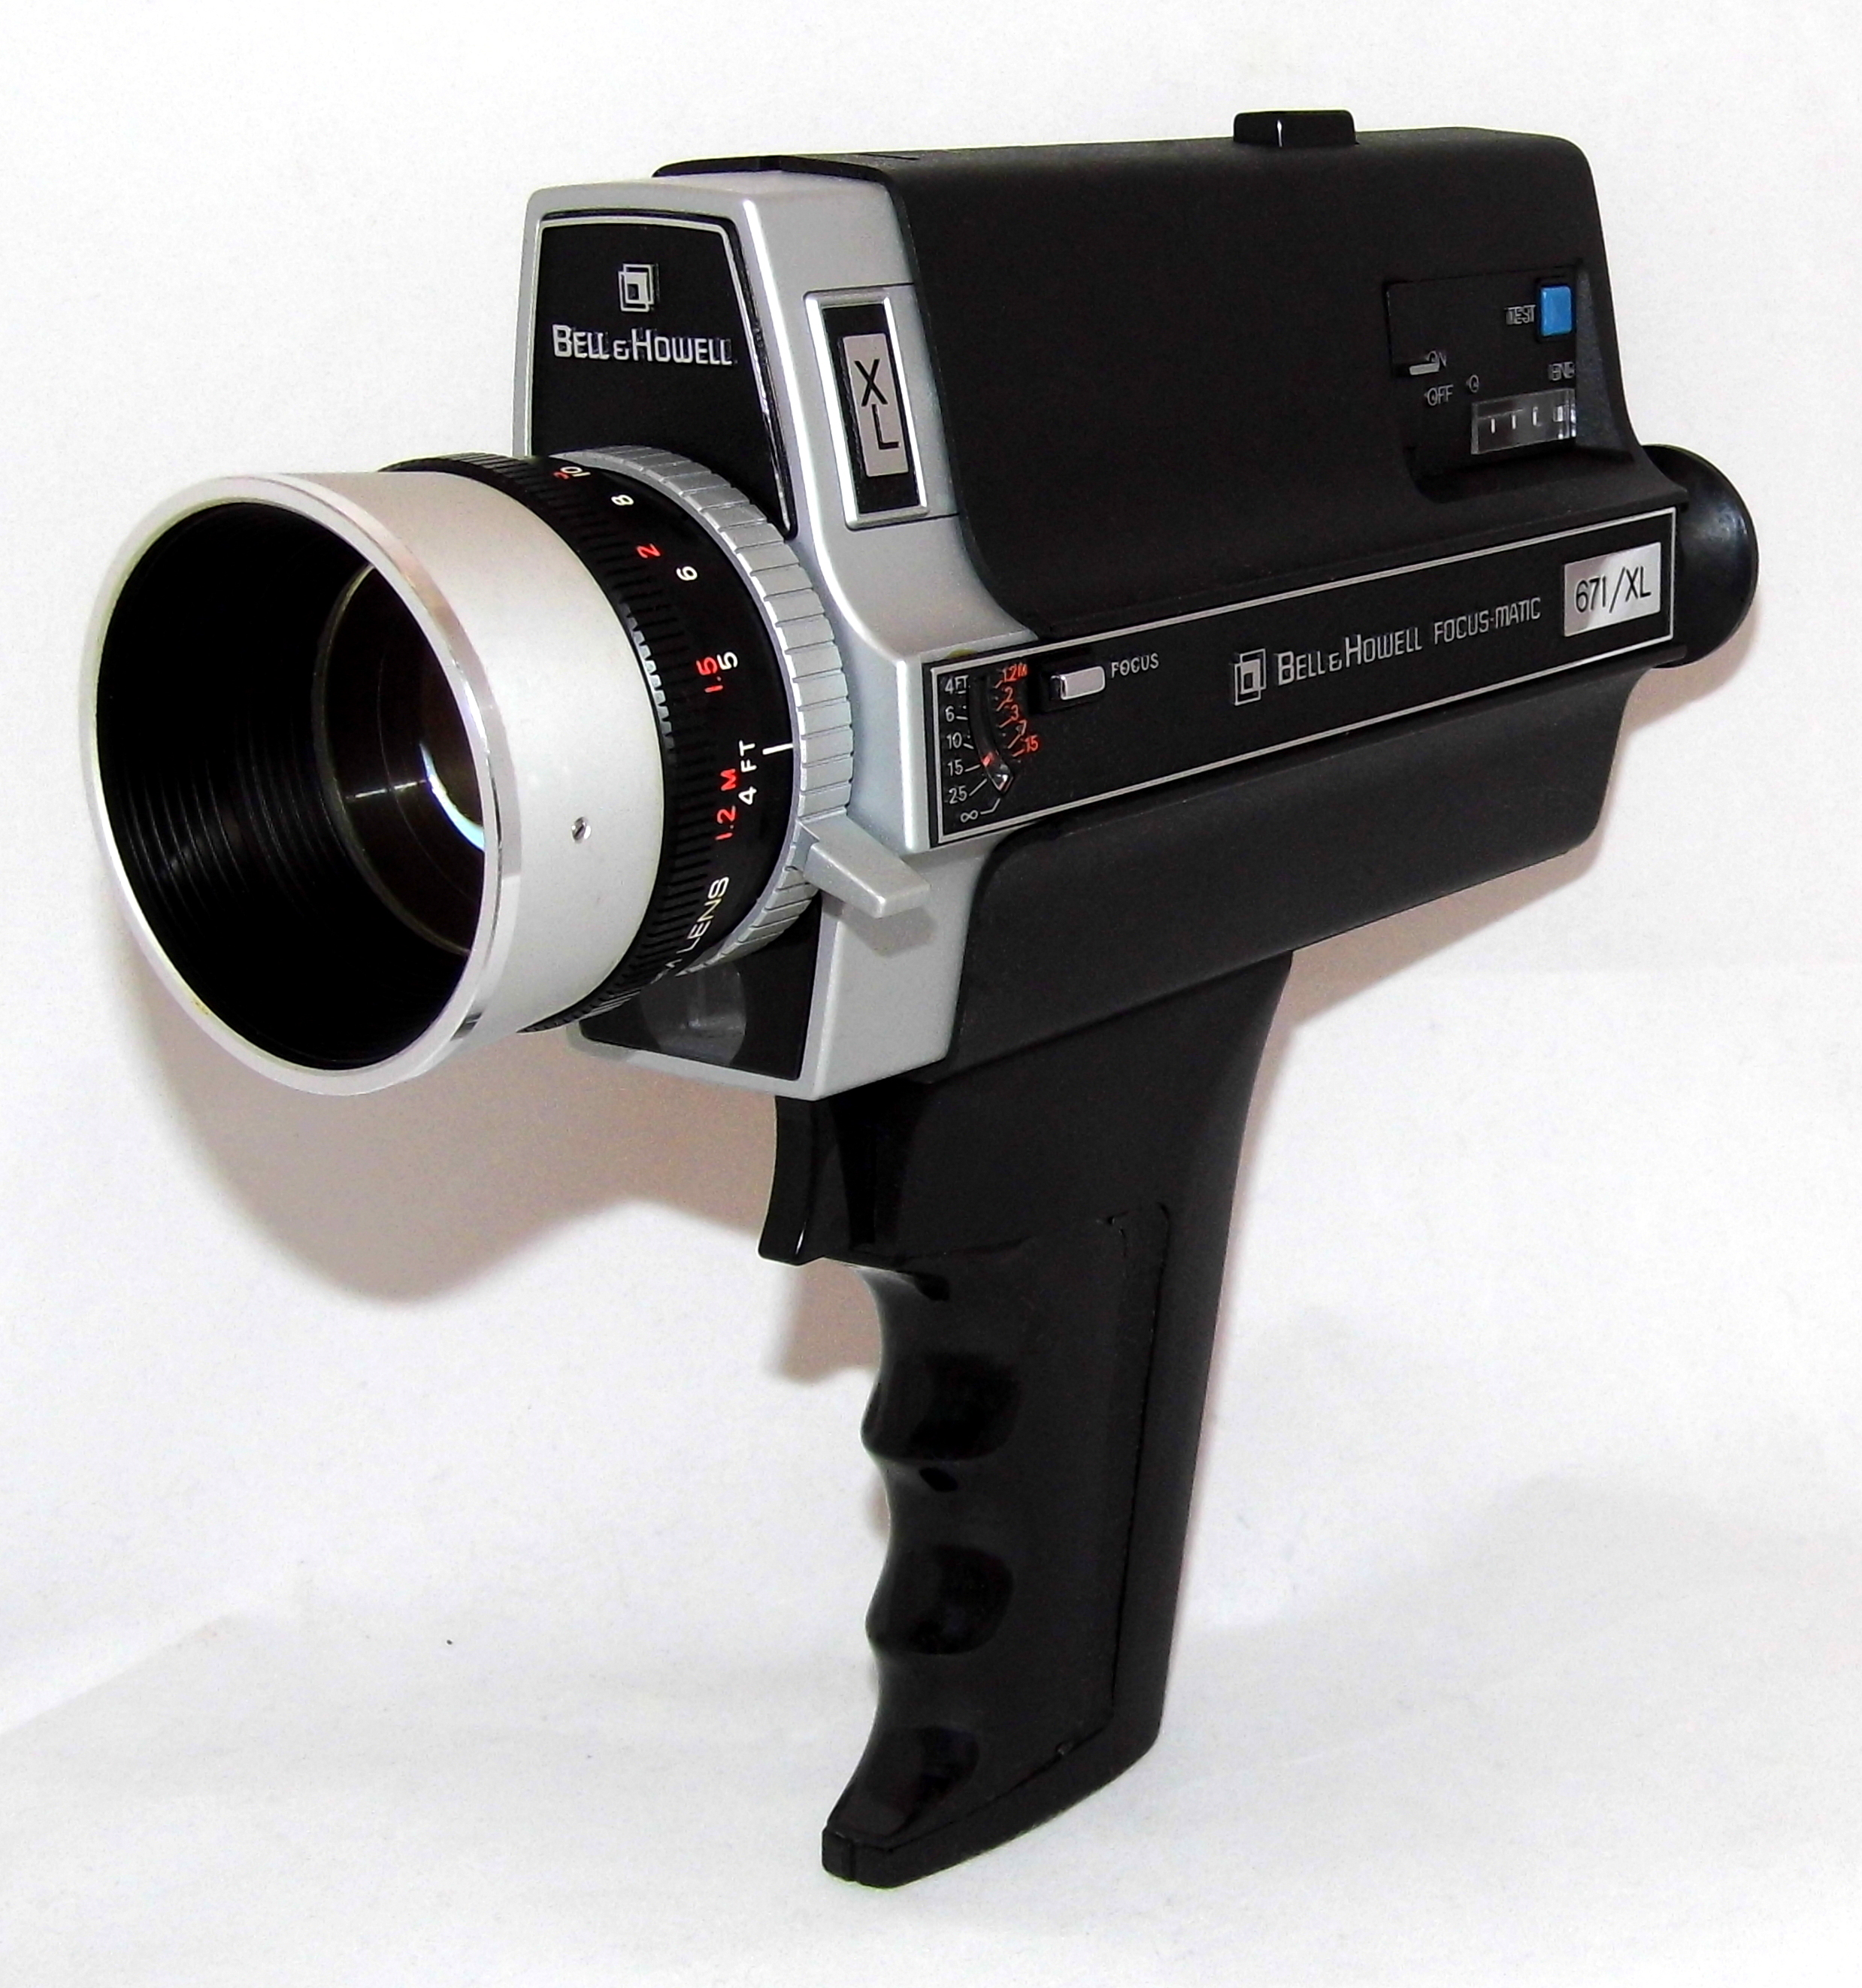 File:Vintage Bell & Howell Focus-Matic 671 XL Super 8 Zoom